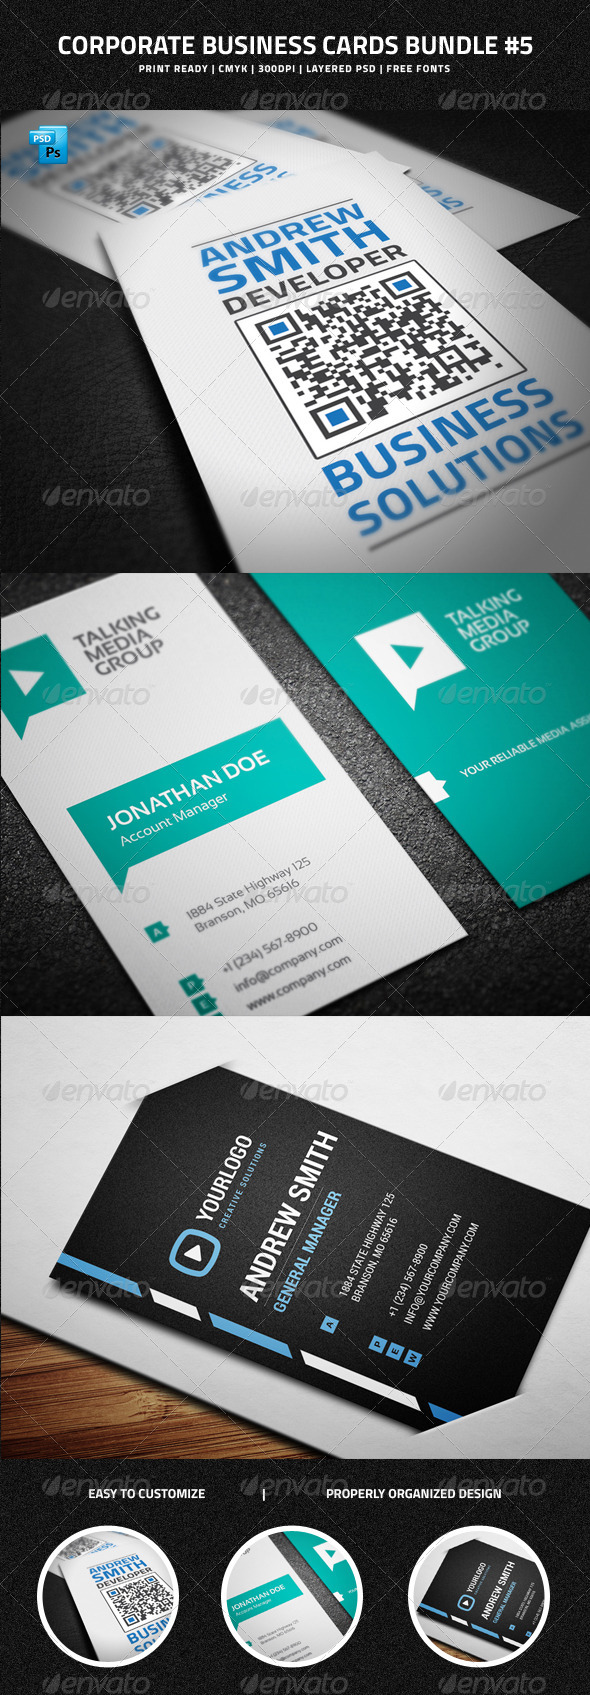 Corporate Business Cards Bundle #5